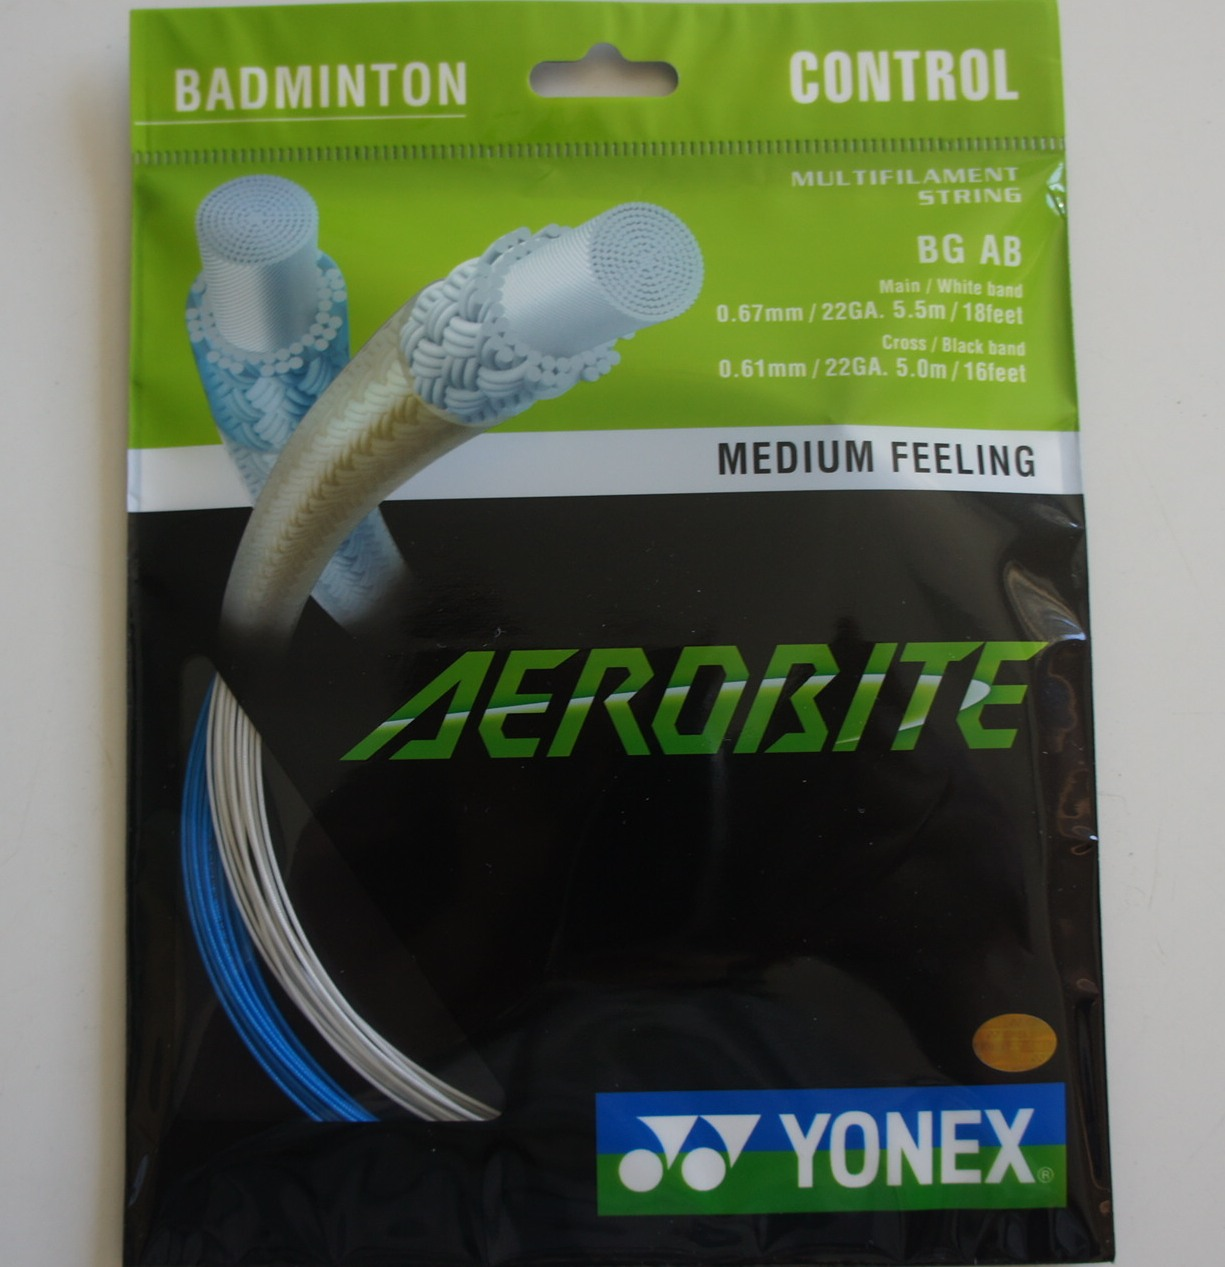 YONEX BG AB Aerobite Badminton String (10 Packs), Blue/White